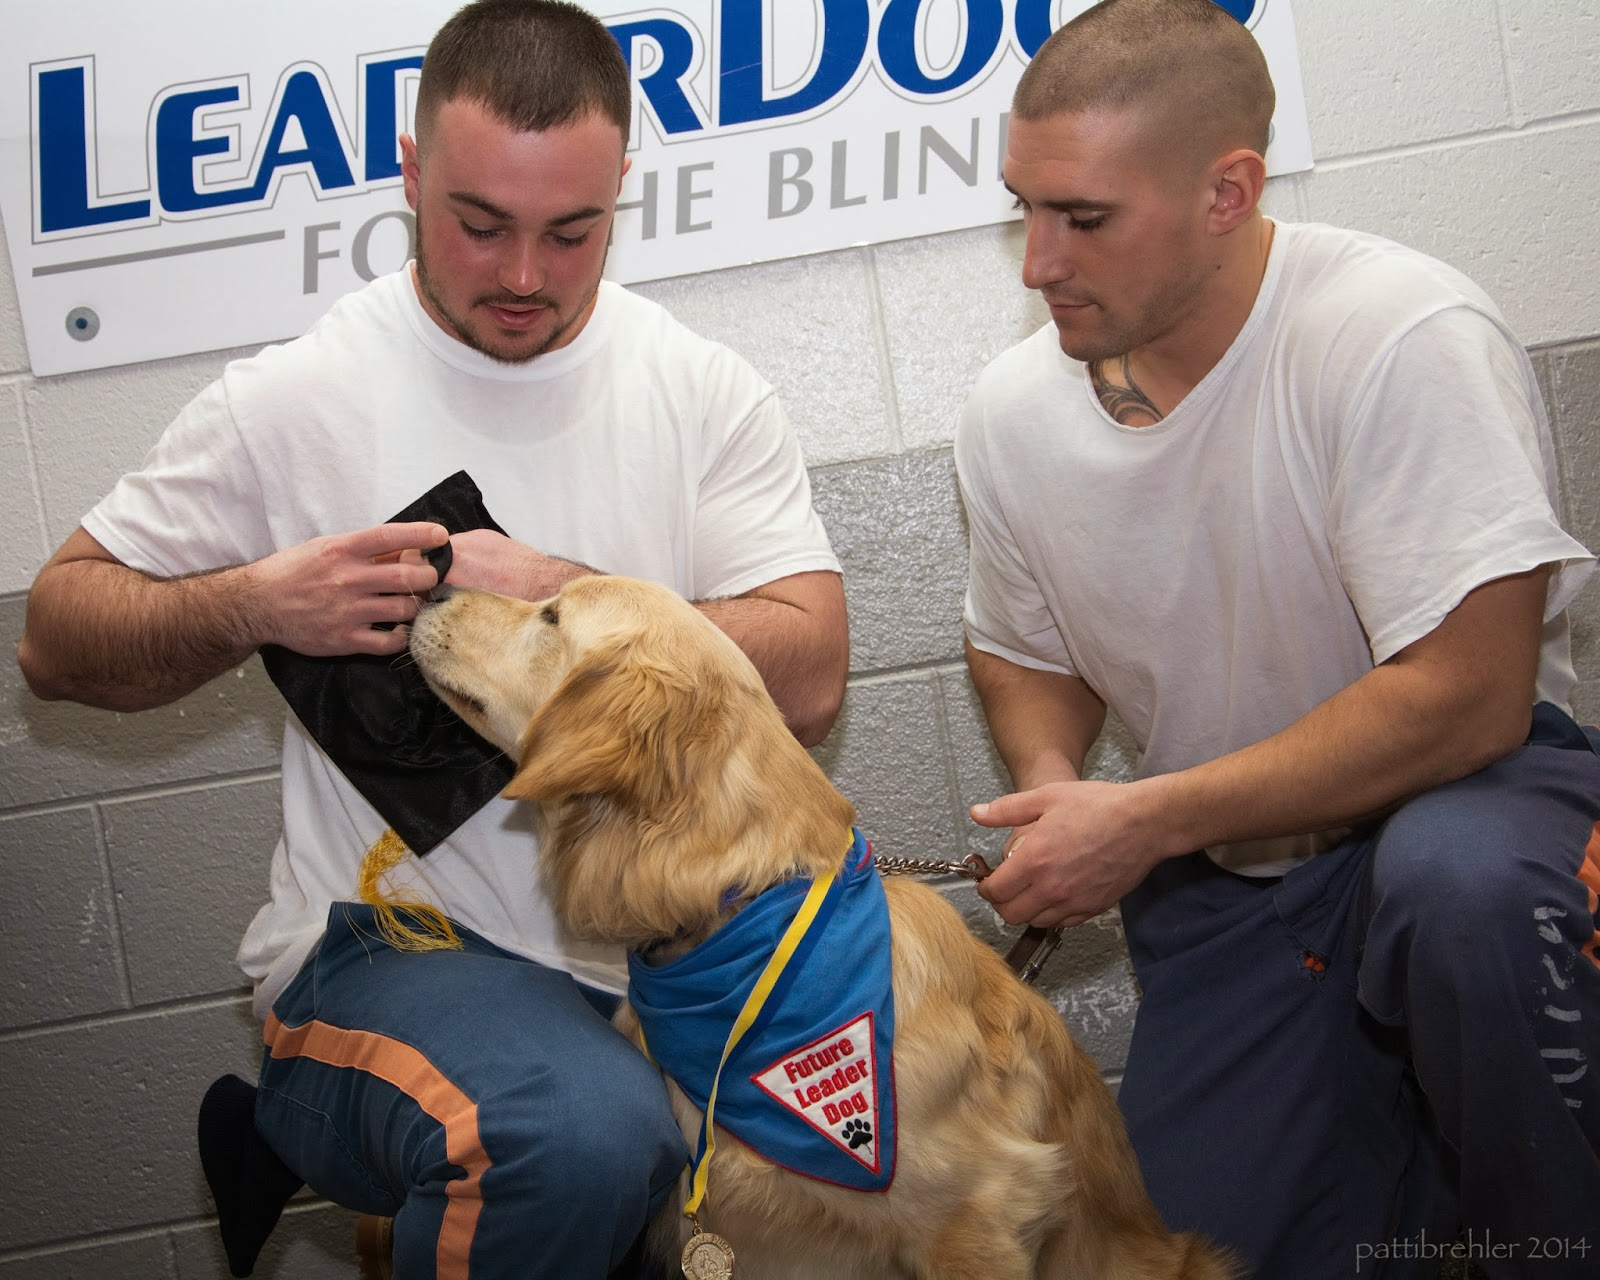 Two men wearing white t-shirts and blue pants are kneeling on one knee with a golden retriver betweent hem. They are trying to put a black graduation had on the dog. The dog is wearing a blue bandana with a white triangle patch with red letters that say Future Leader Dog and a black paw print. There is a yellow and blue ribbon around the dog's neck with a medal on it. Behind them on the wall is a poster that says Leader Dogs for the Blind.